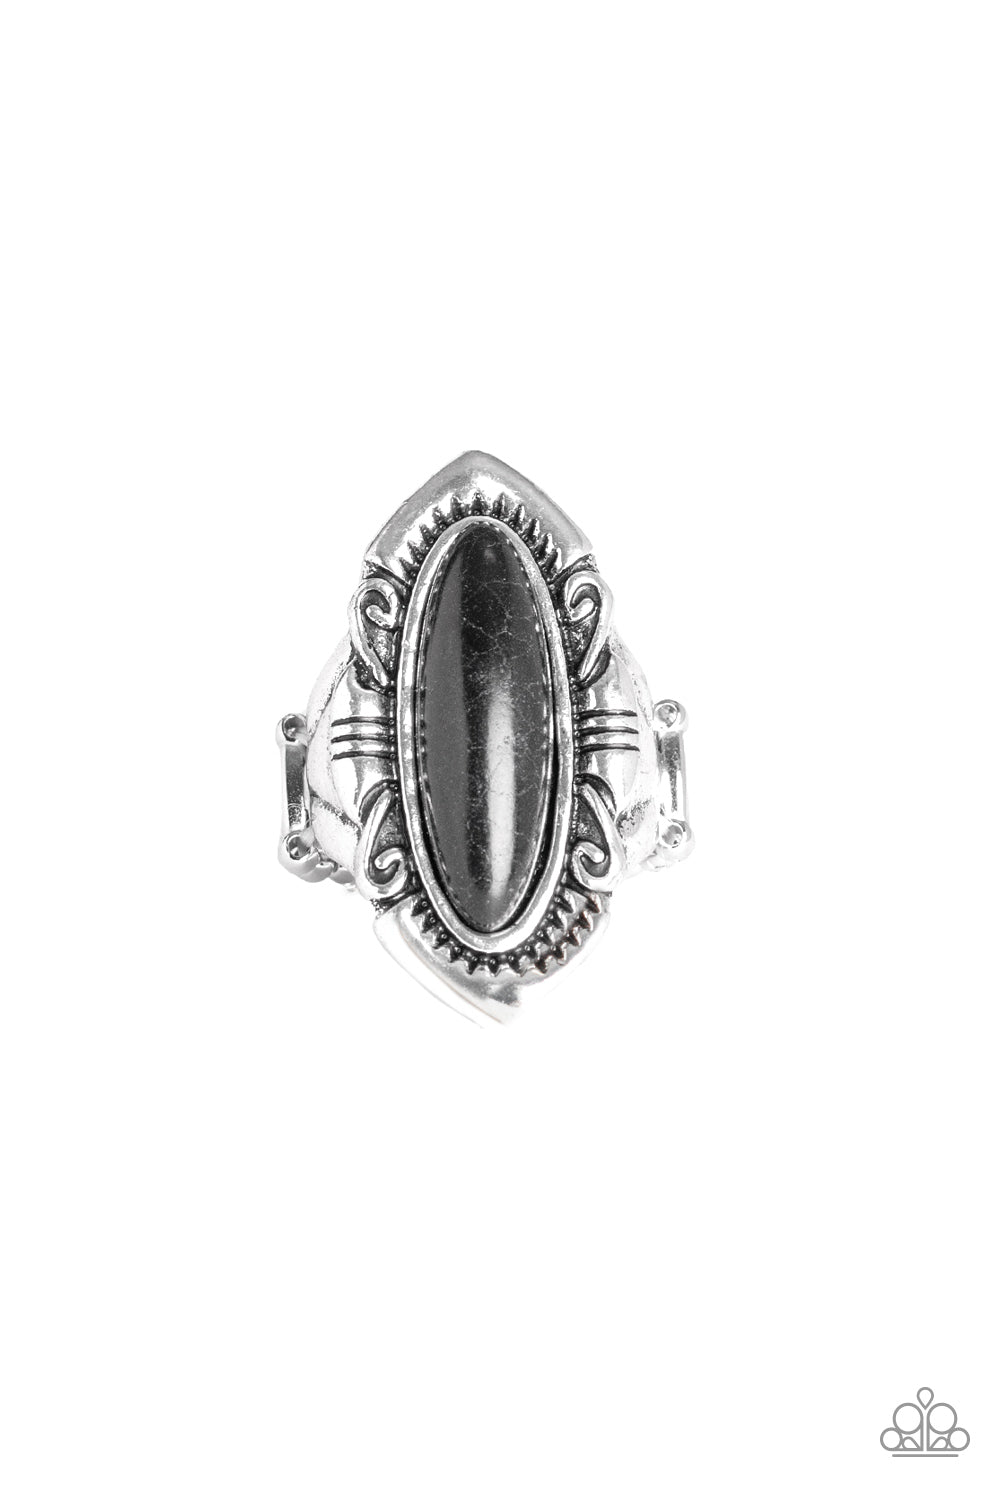 Paparazzi Accessories - Santa Fe Serenity - Black Ring